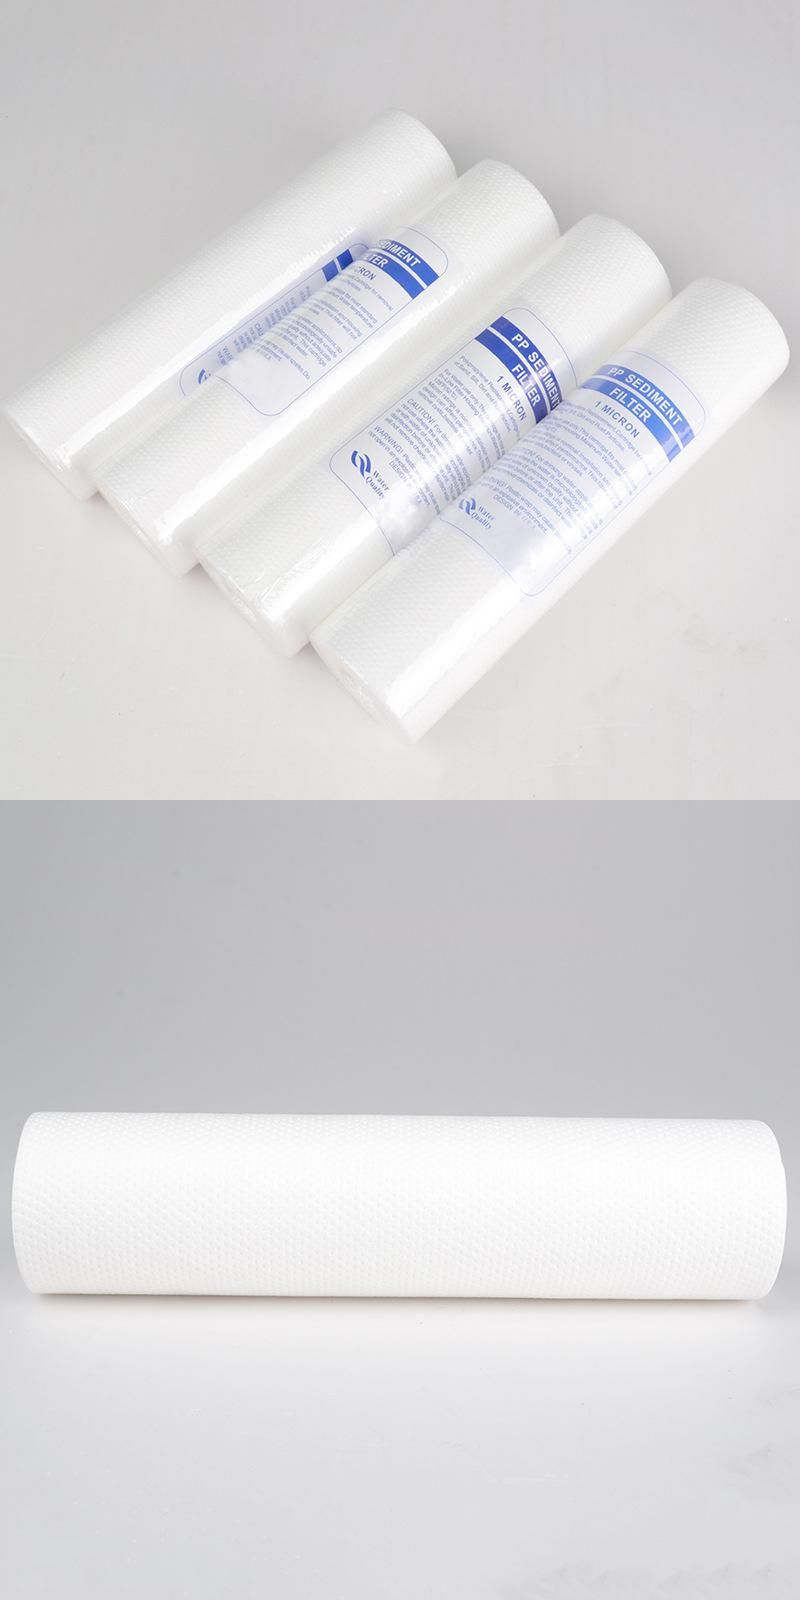 Visit To Buy Water Purifier 10 Inch 4pcs 1 Micron Sediment Water Filter Cartridge Pp Cotton Filter Water Purifier Water Filter Cartridge Water Filters System